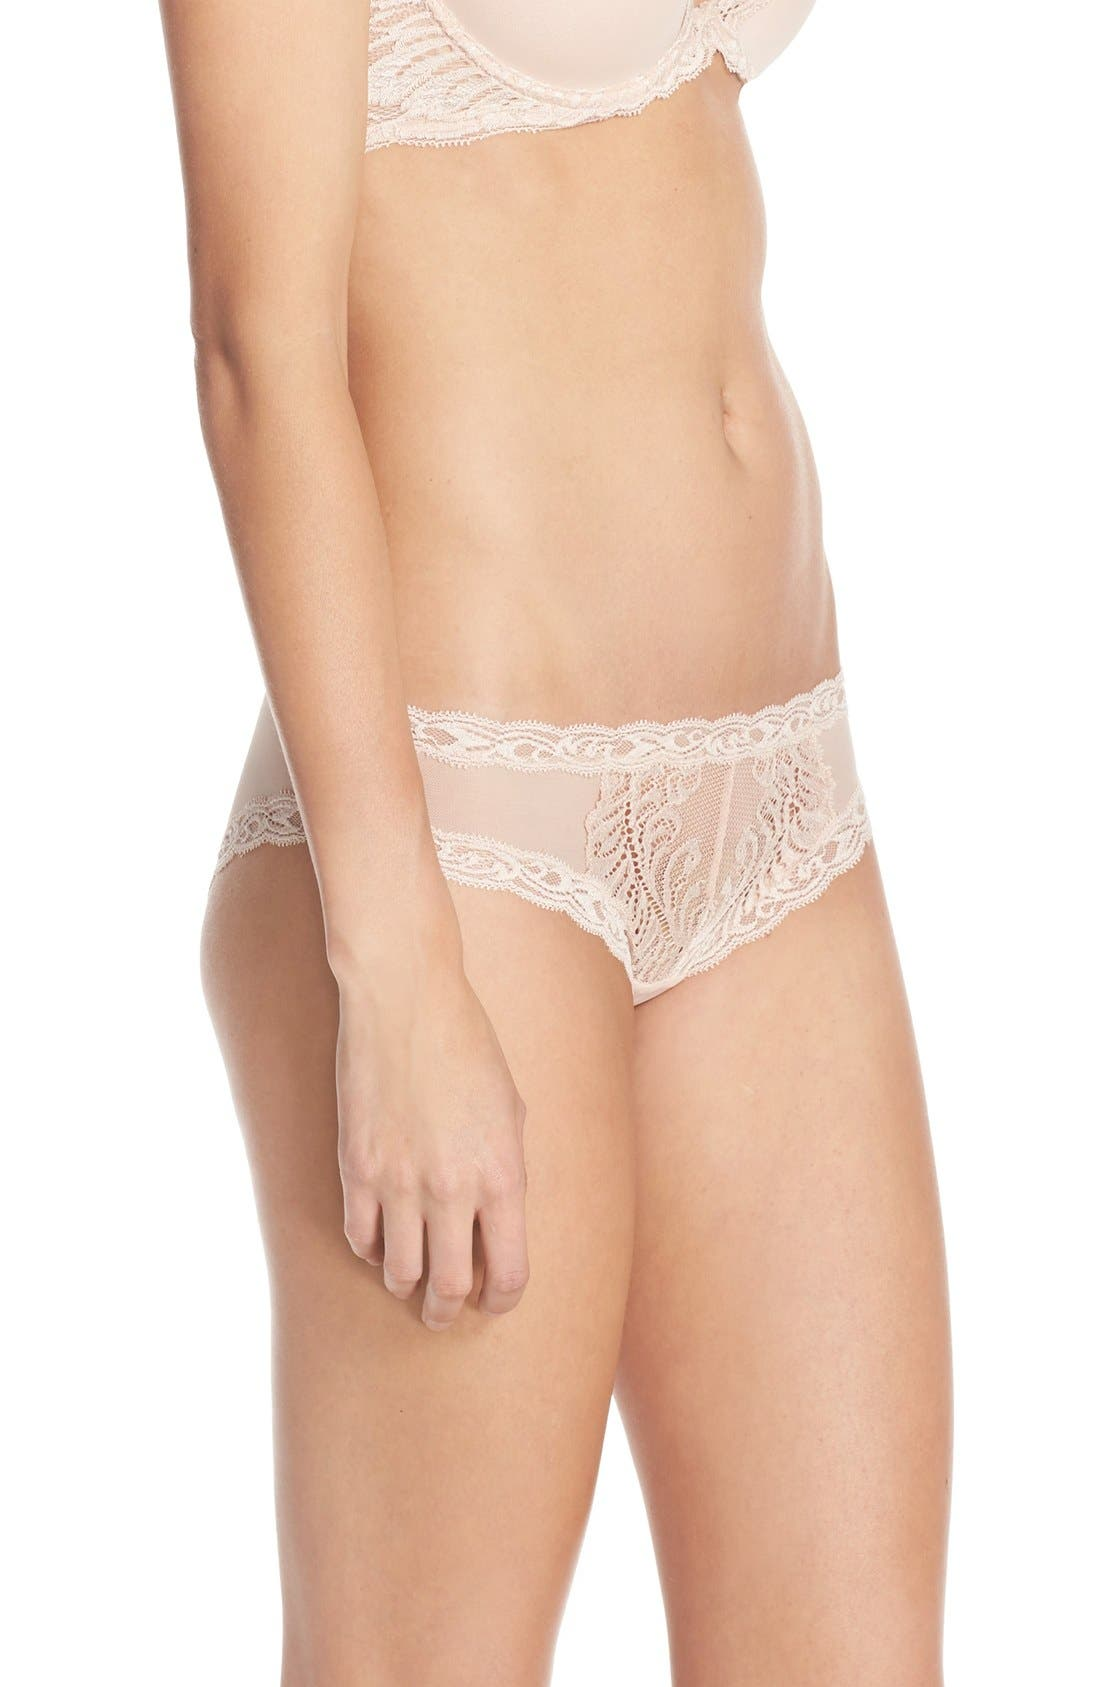 Feathers Hipster Briefs,                             Alternate thumbnail 121, color,